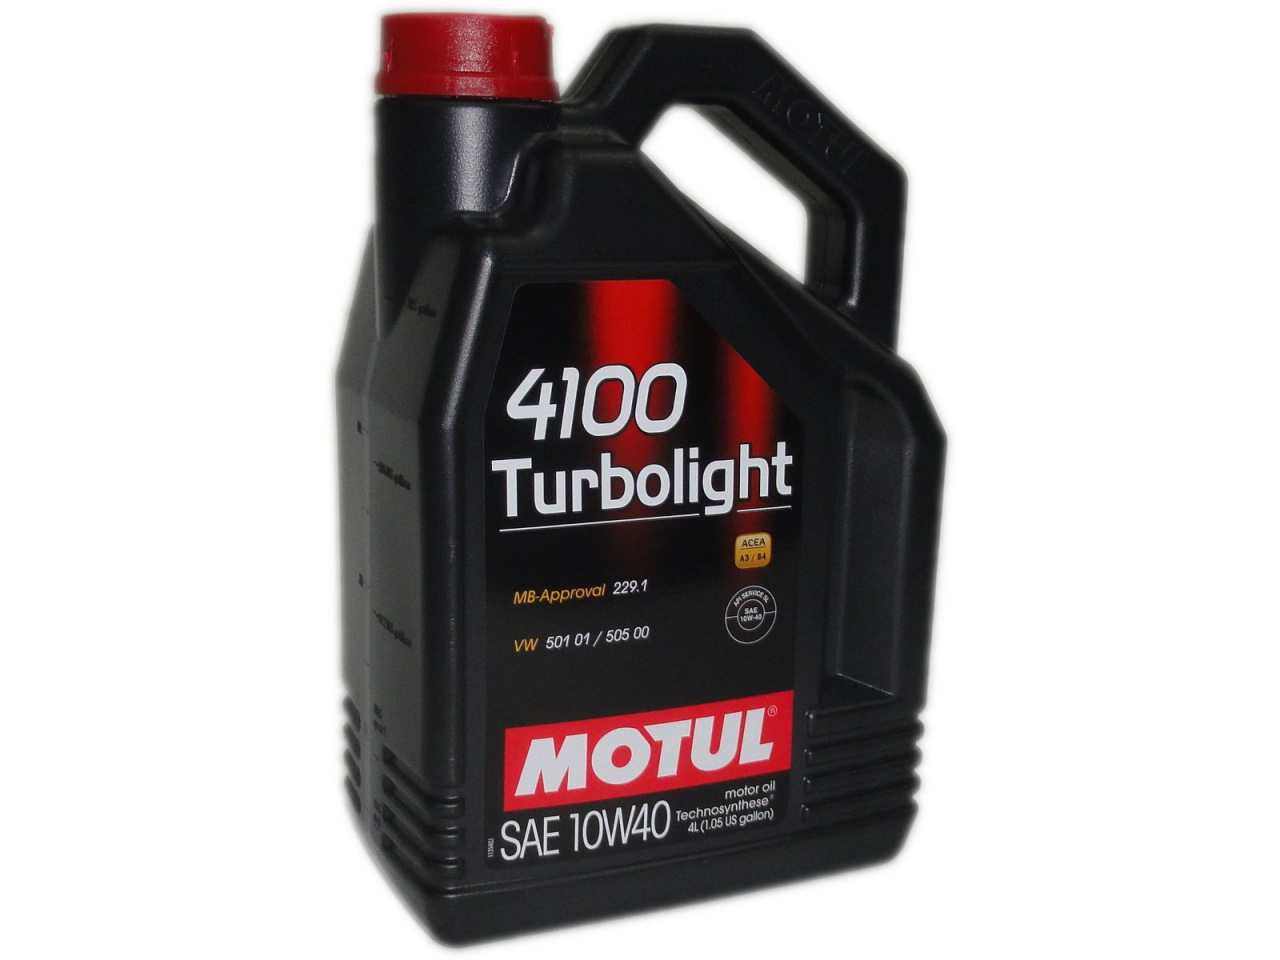 MOTUL 4100 turbolight 10w 40